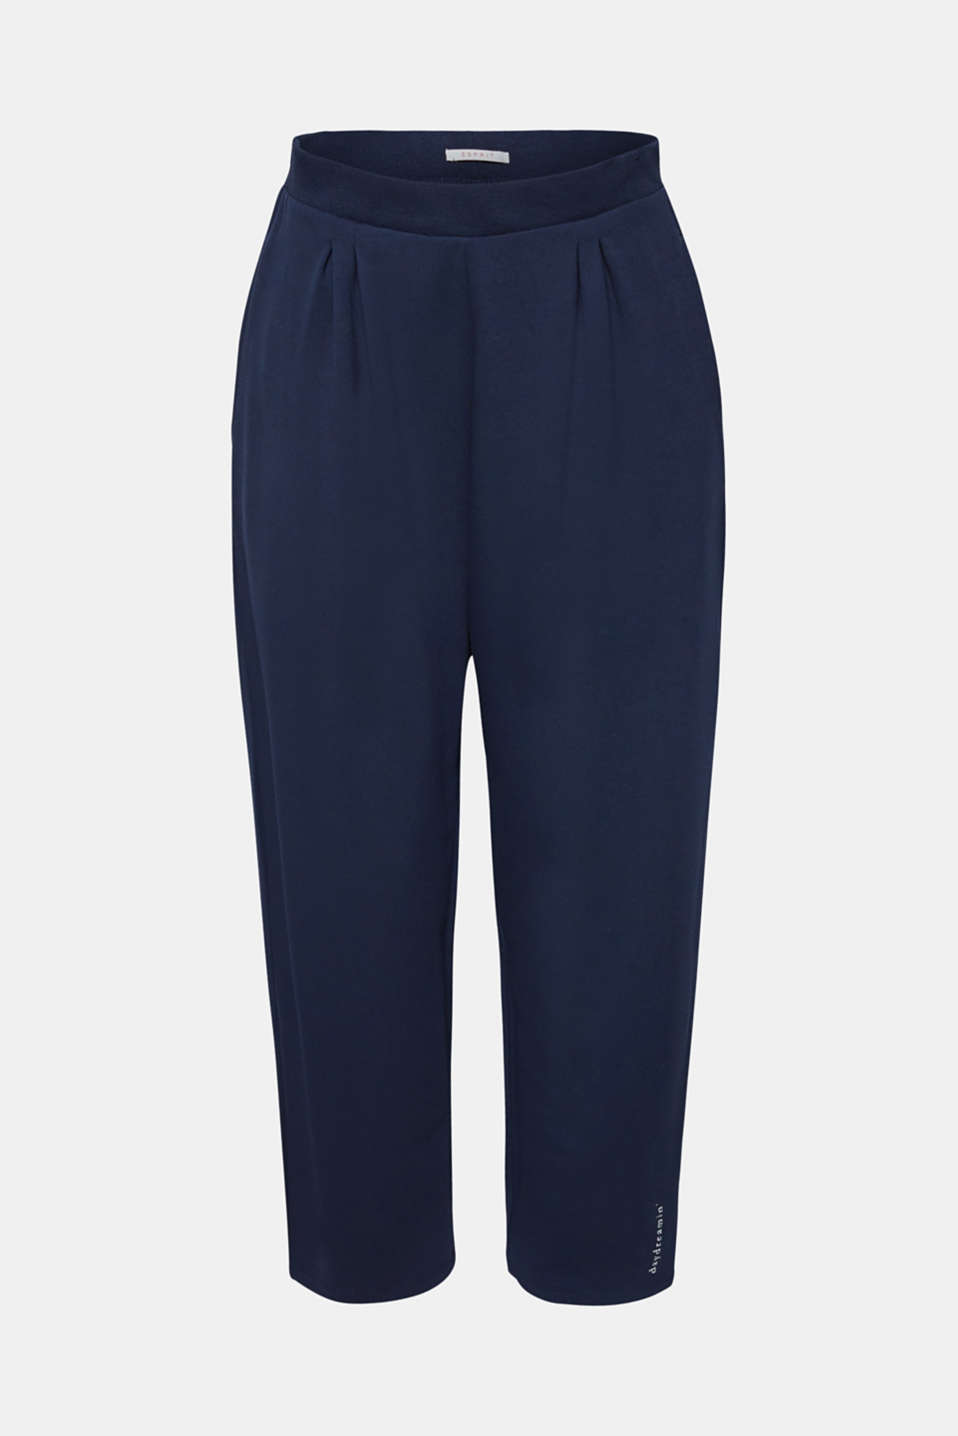 Oversized trousers in thick stretch jersey, NAVY, detail image number 4